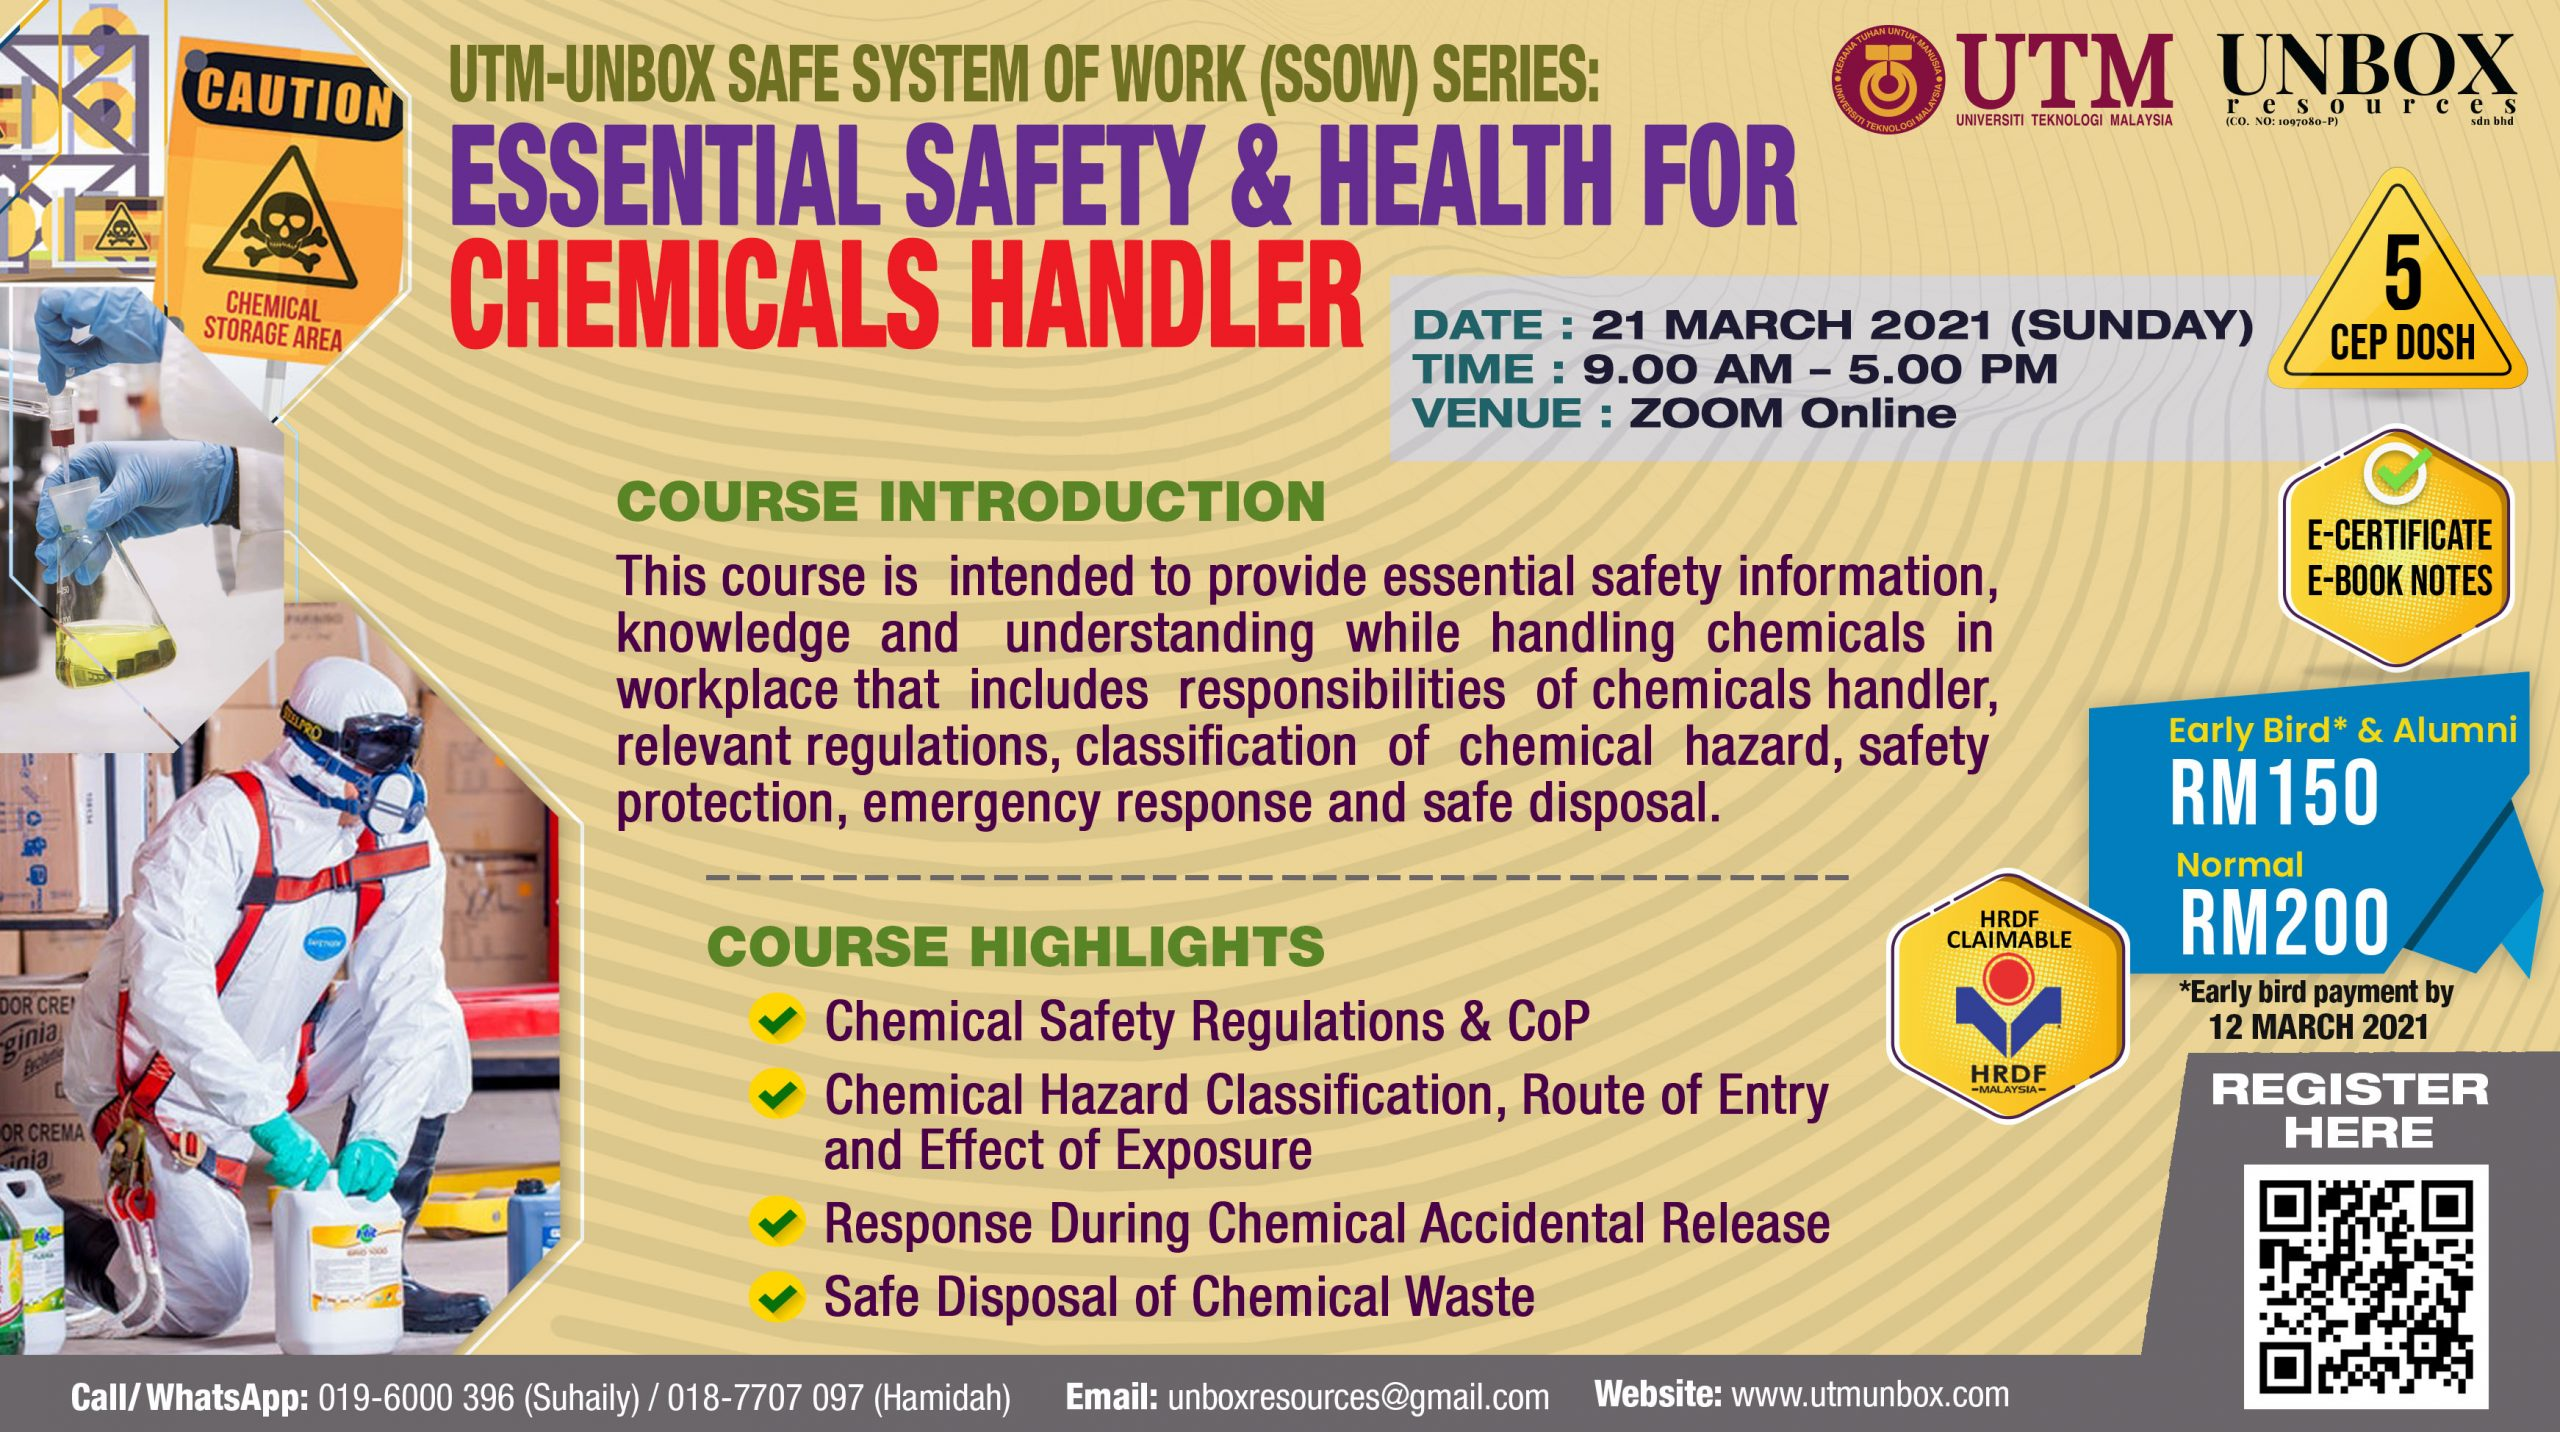 UPCOMING ONLINE CEP COURSE: ESSENTIAL SAFETY AND HEALTH FOR CHEMICAL HANDLER TRAINING (21 MARCH 2021, ZOOM ONLINE)